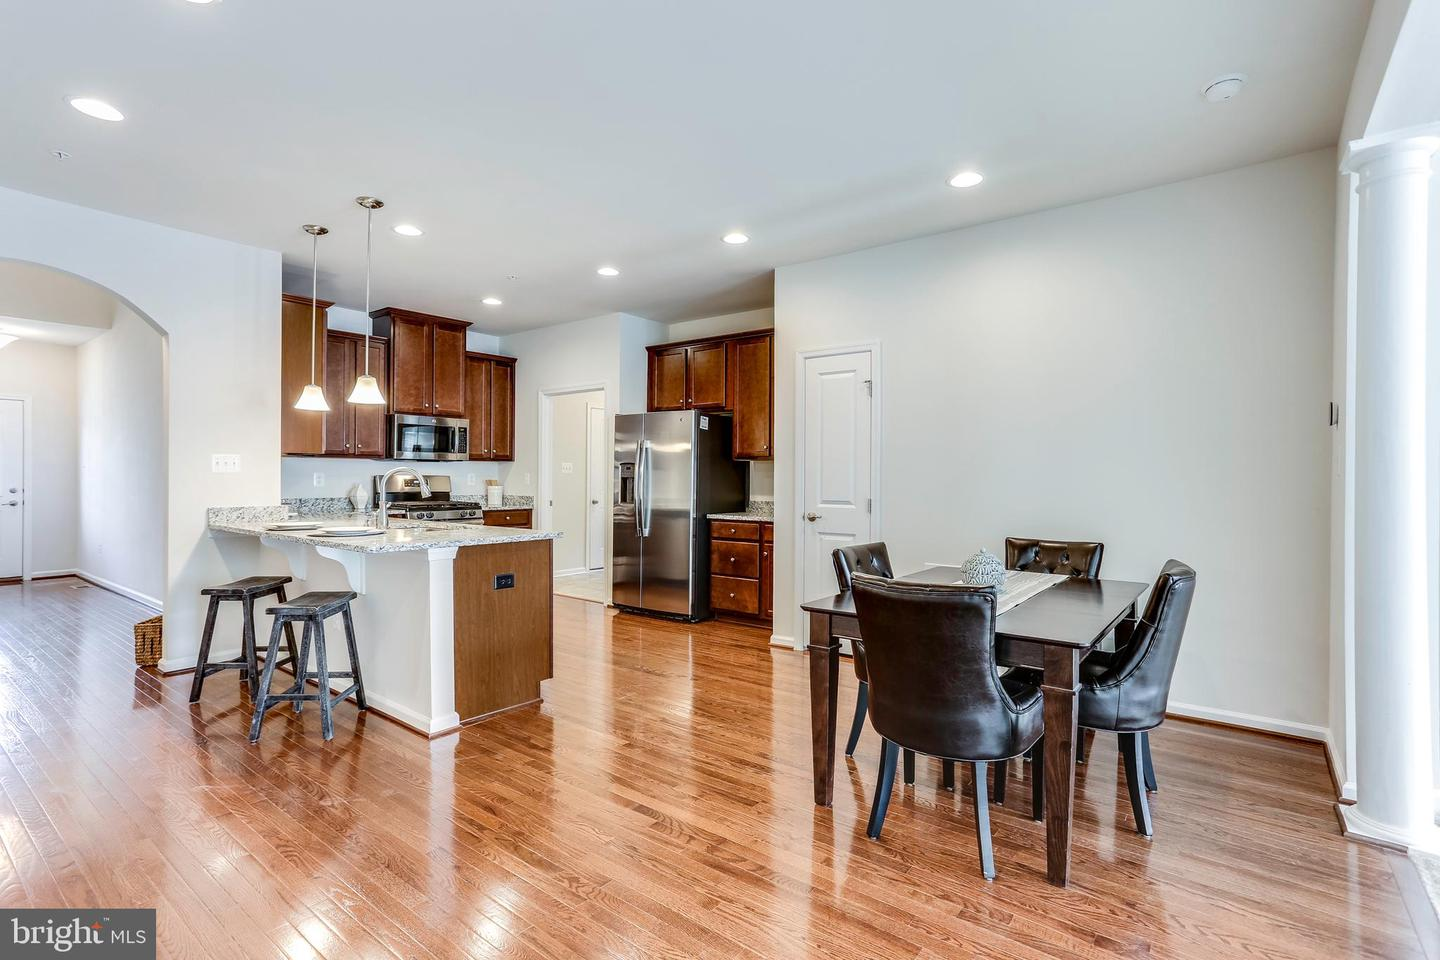 Additional photo for property listing at 8317 Pondview Dr Millersville, Maryland 21108 United States